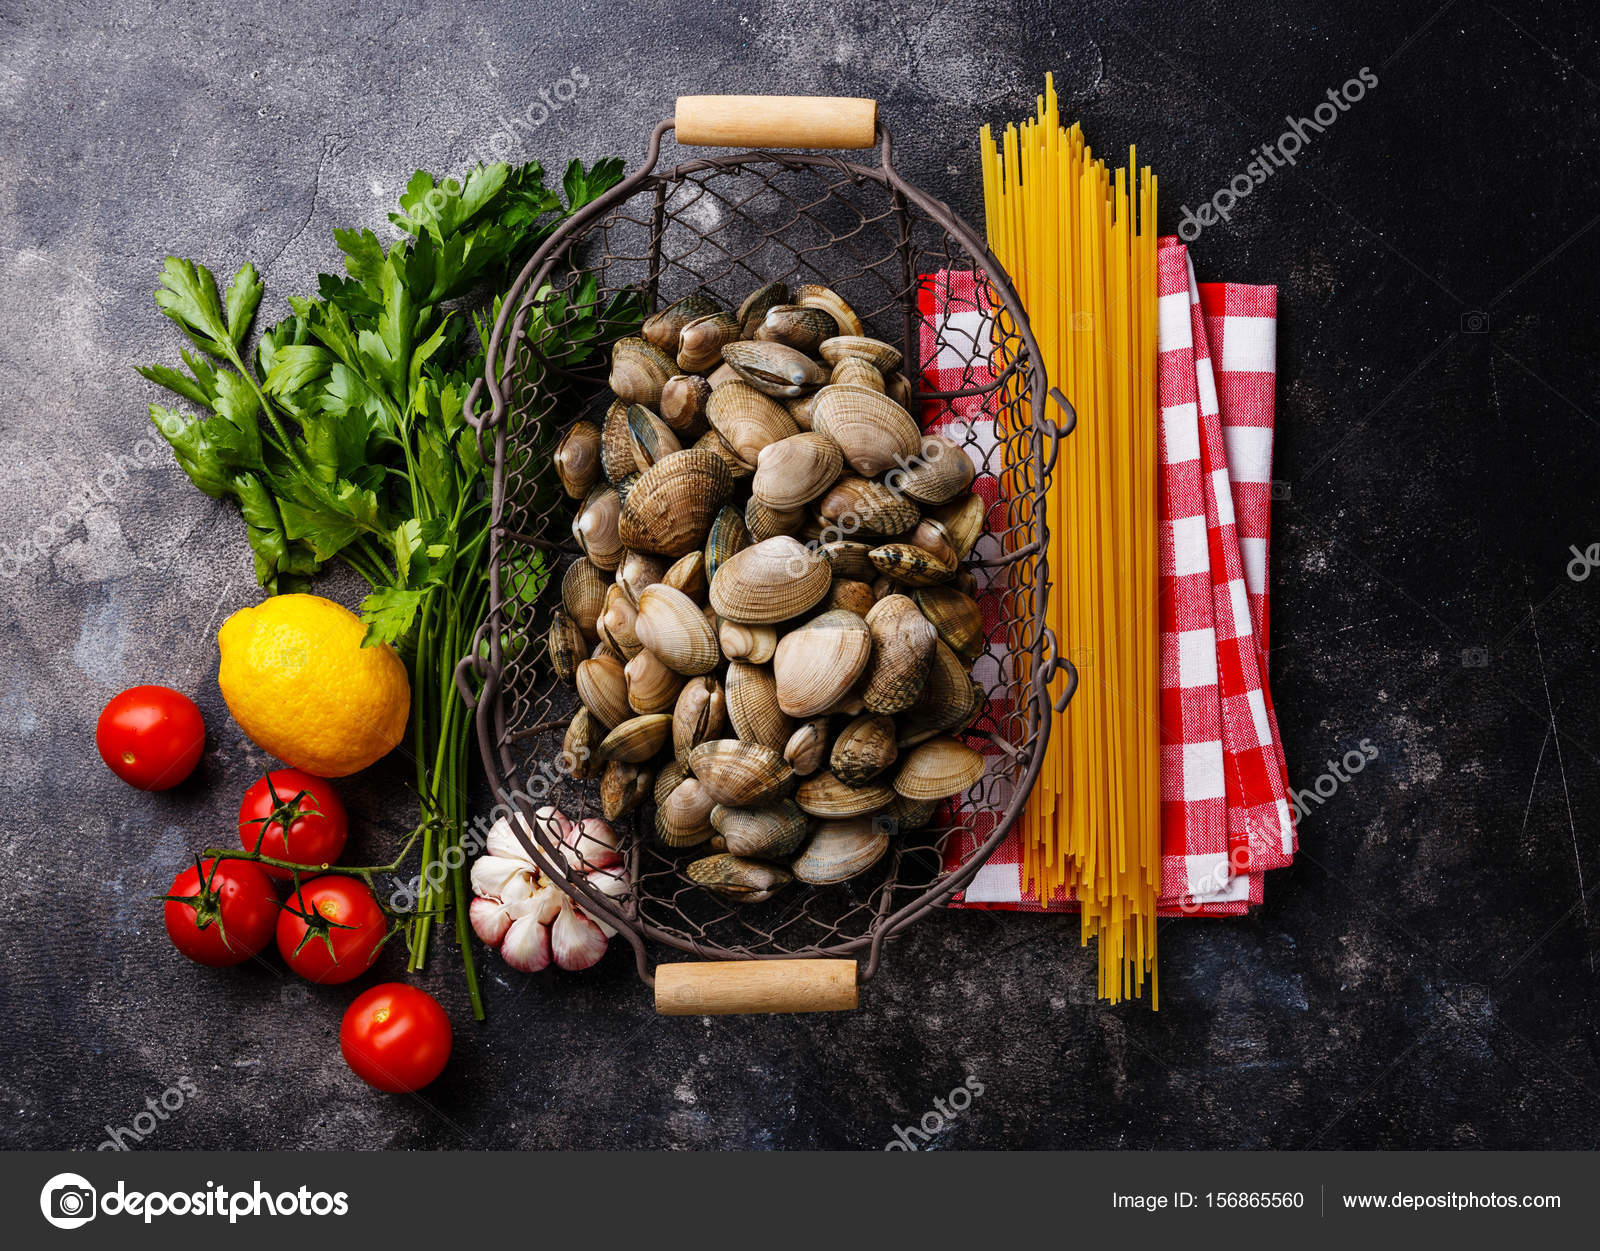 Raw food ingredients stock photo lisovskaya 156865560 raw food ingredients stock photo forumfinder Image collections